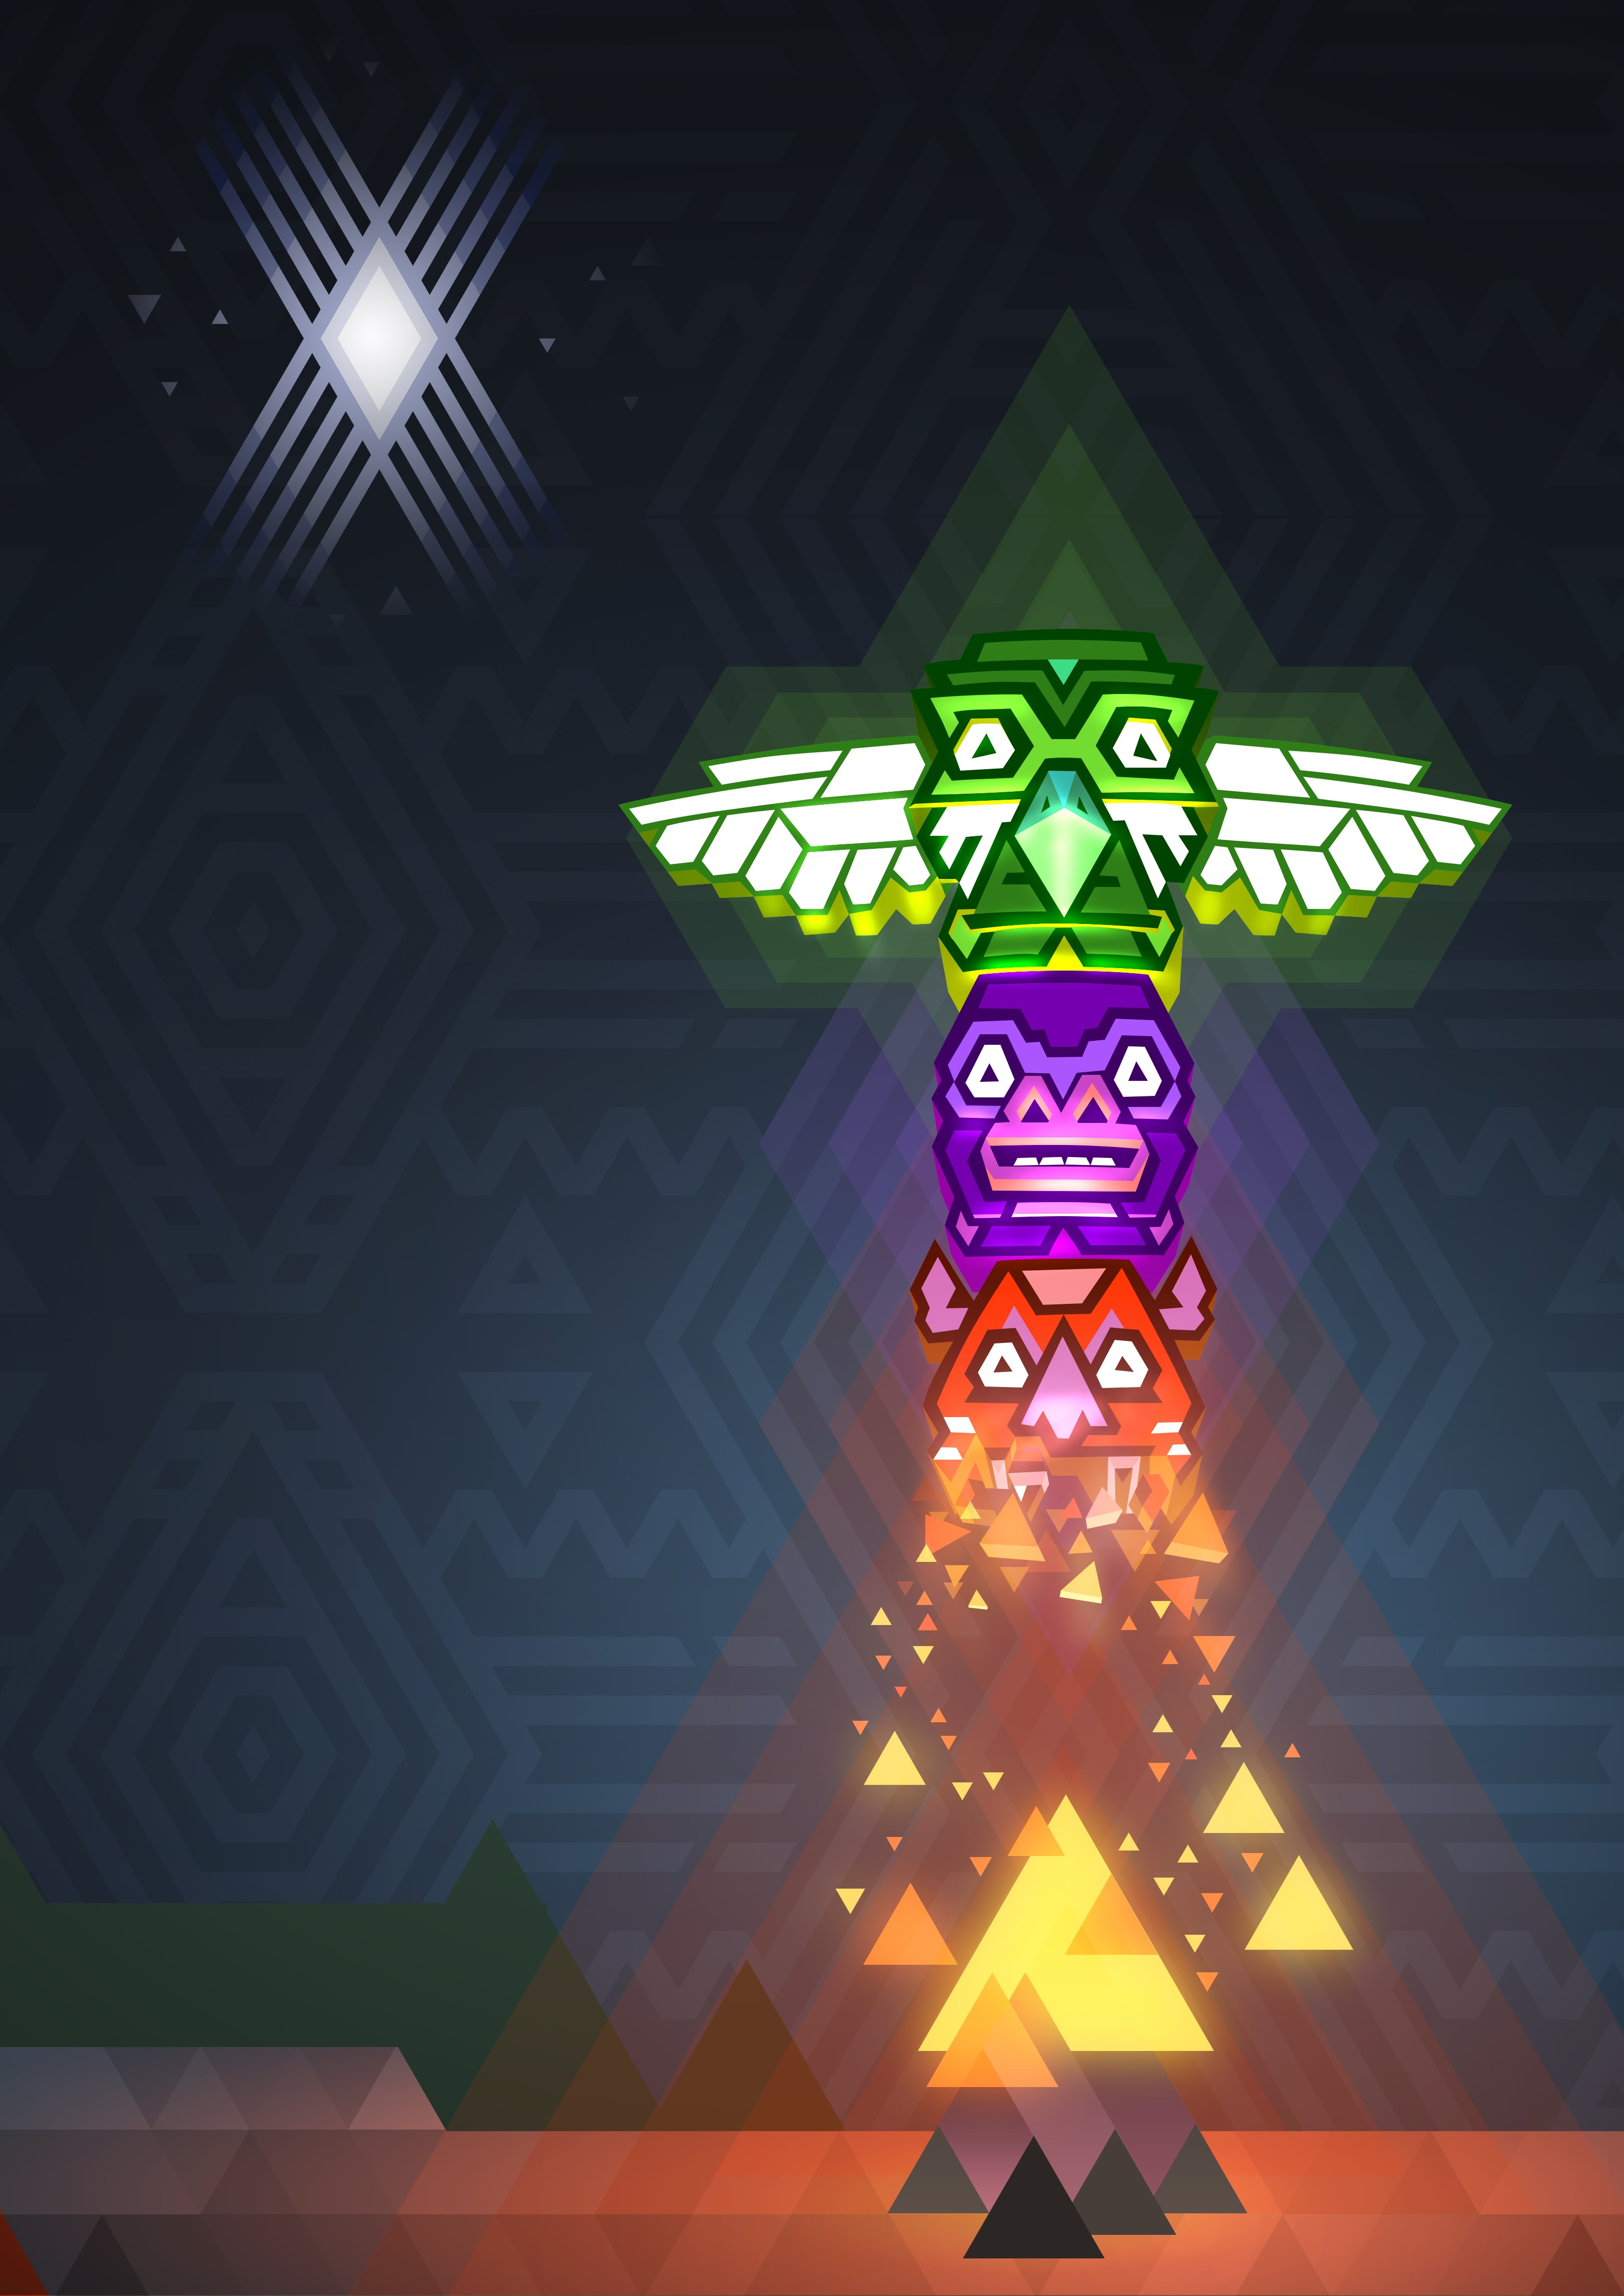 Project Totem harkens back to simple, clean and precise platforming